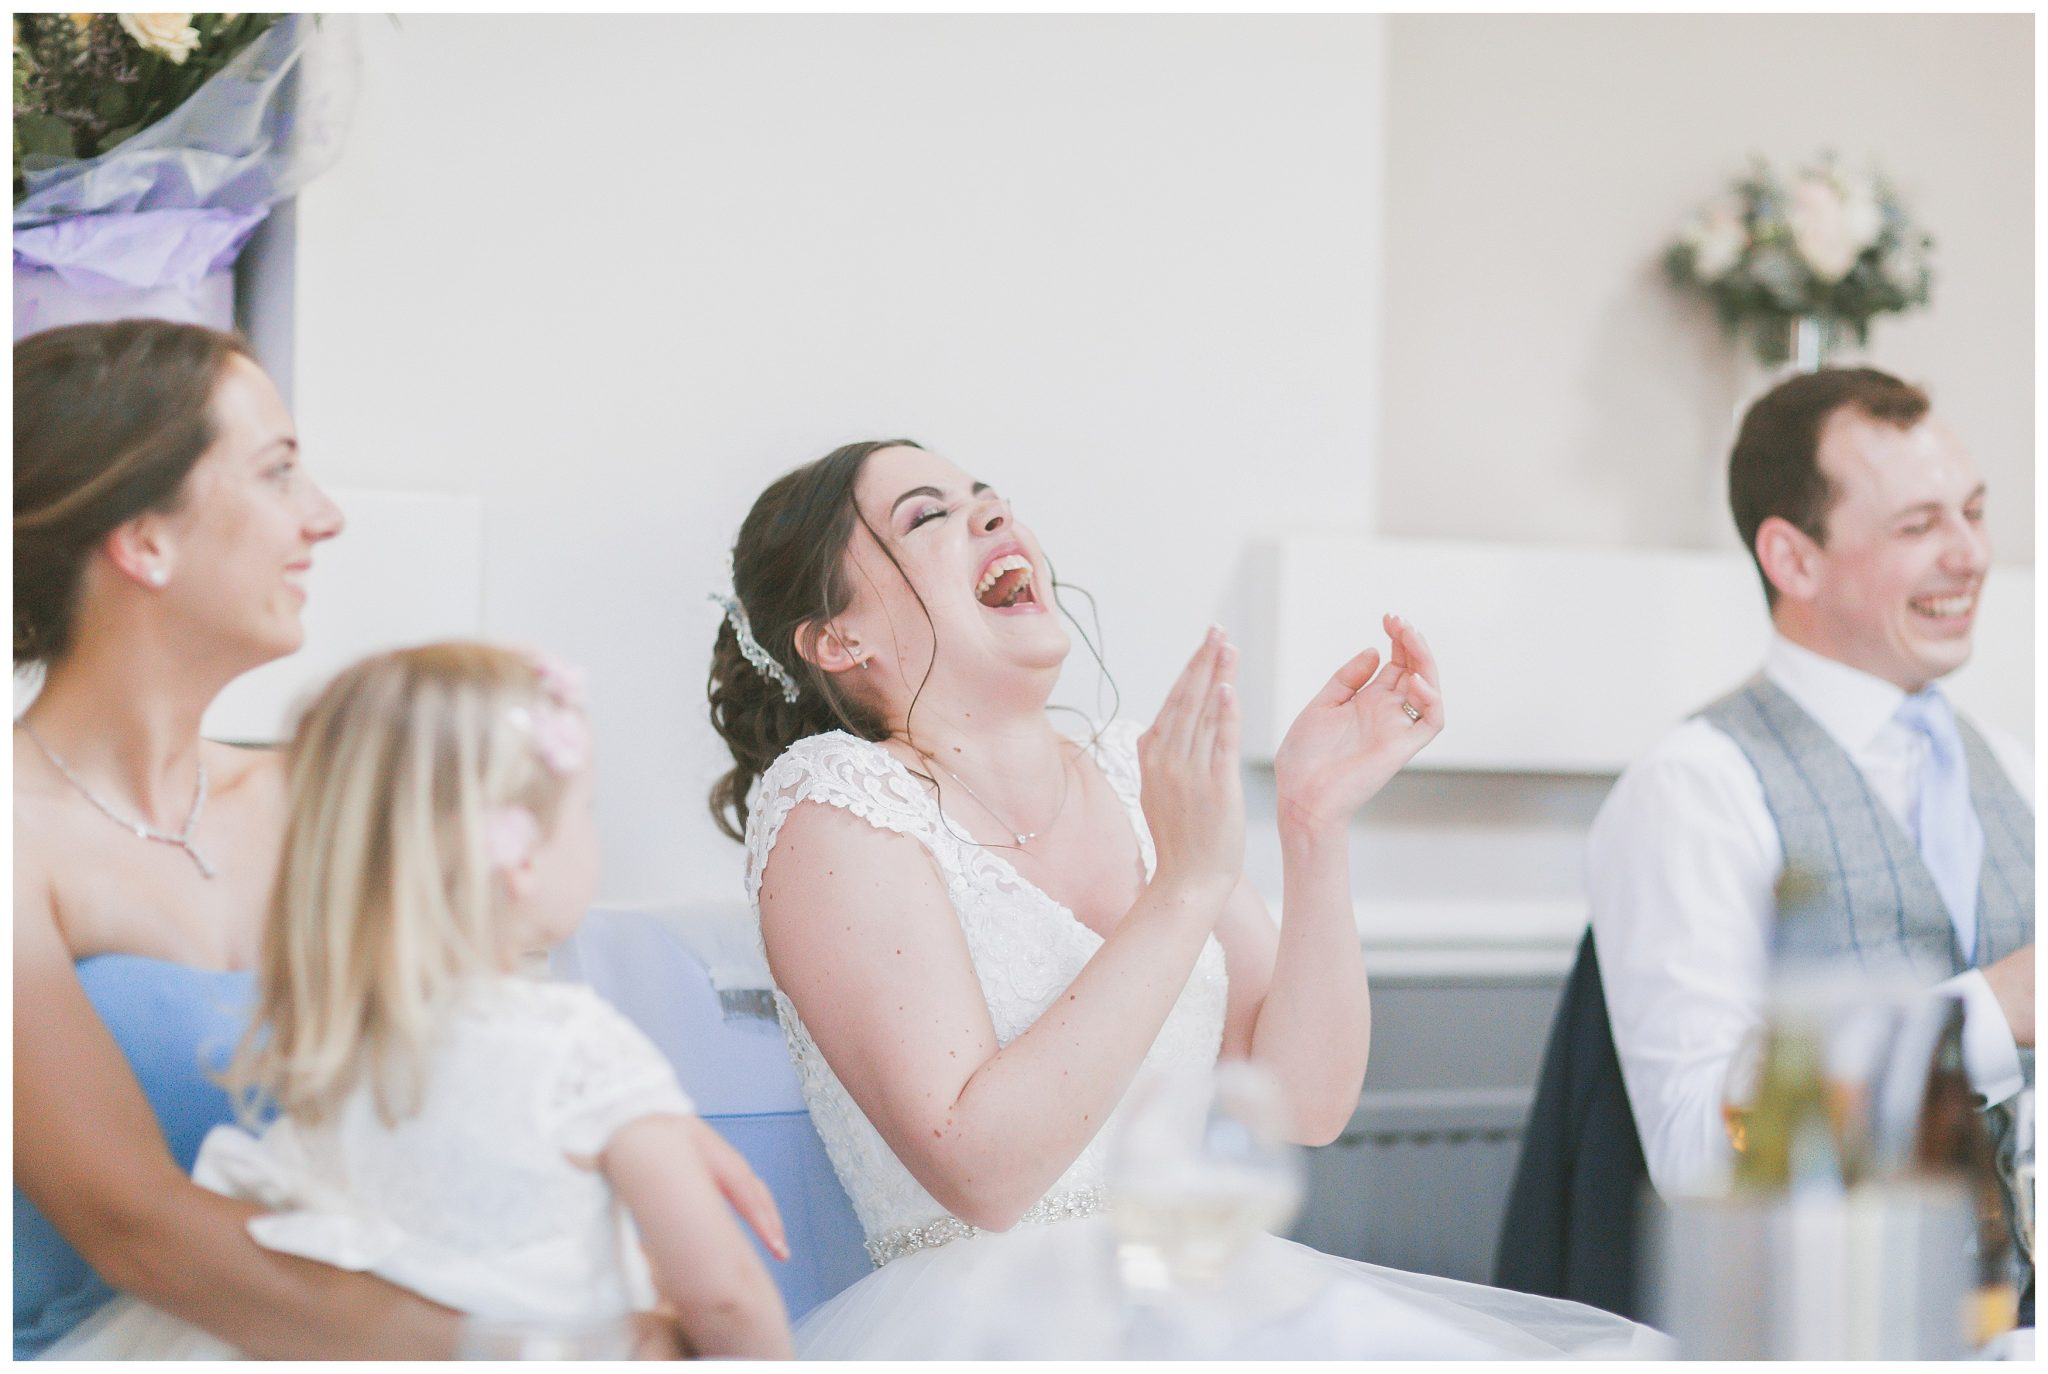 Bride laughing and clapping her hands